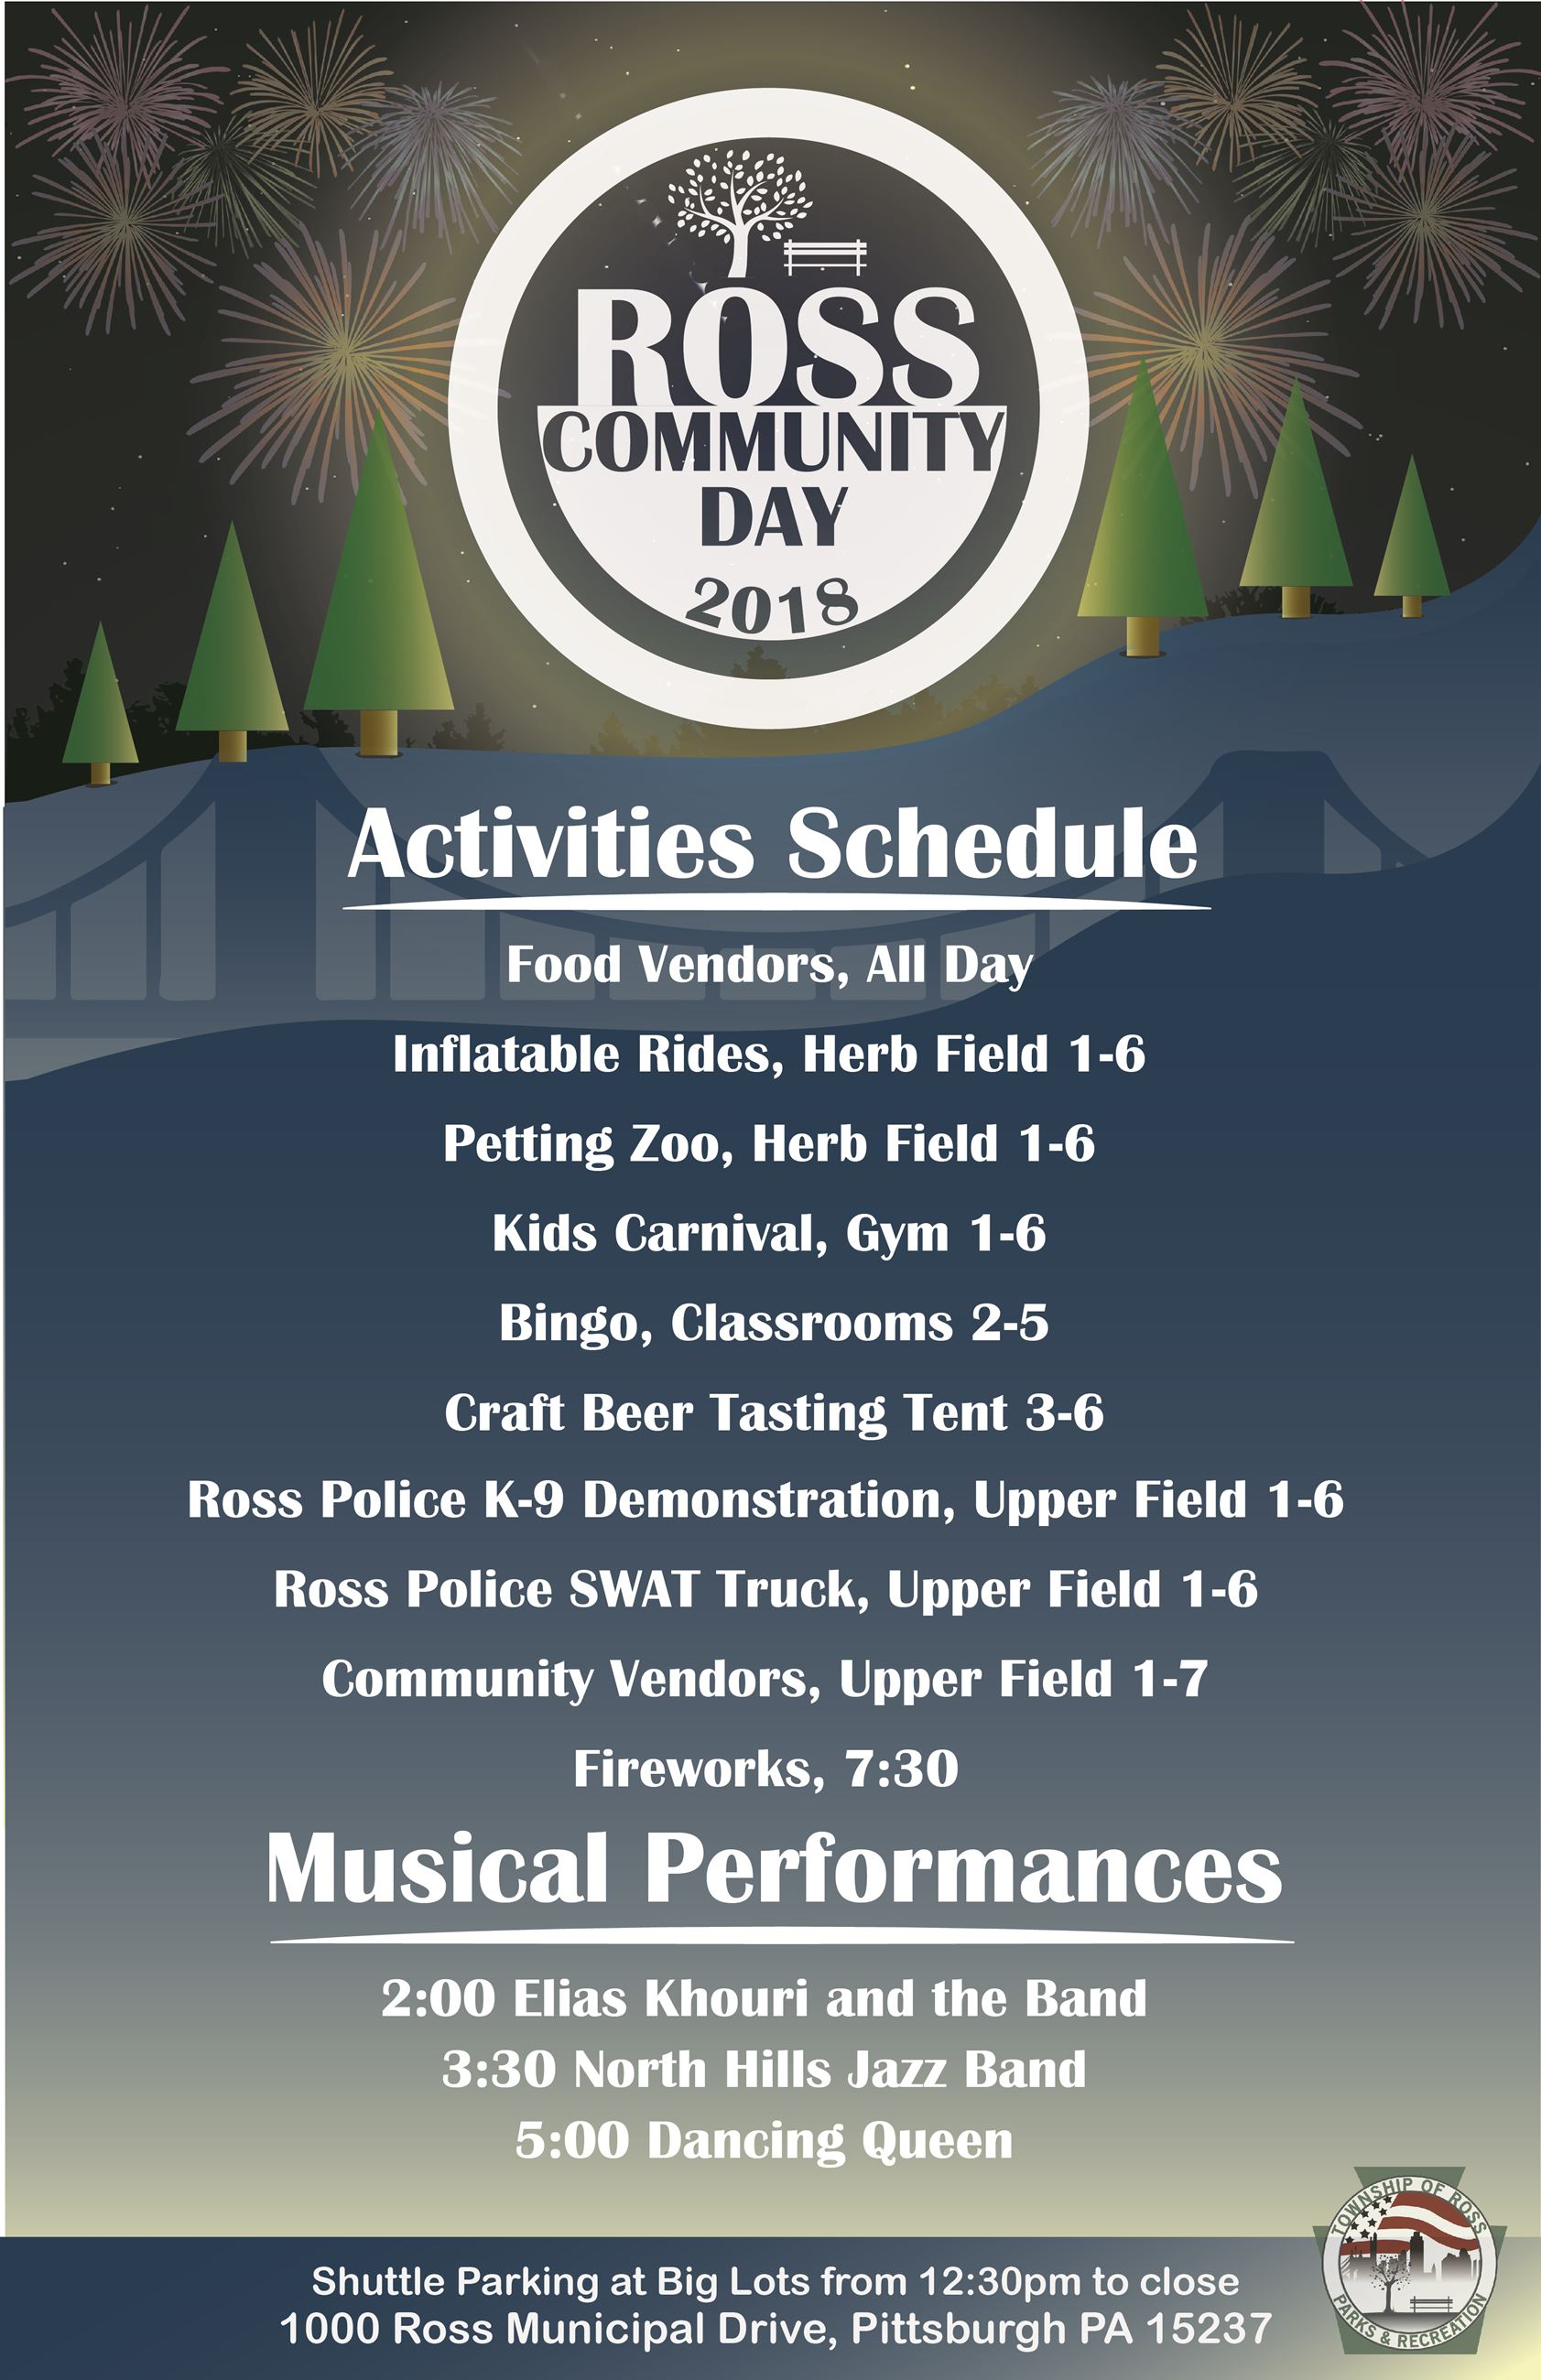 Activities Schedule_Artboard 2_Artboard 2